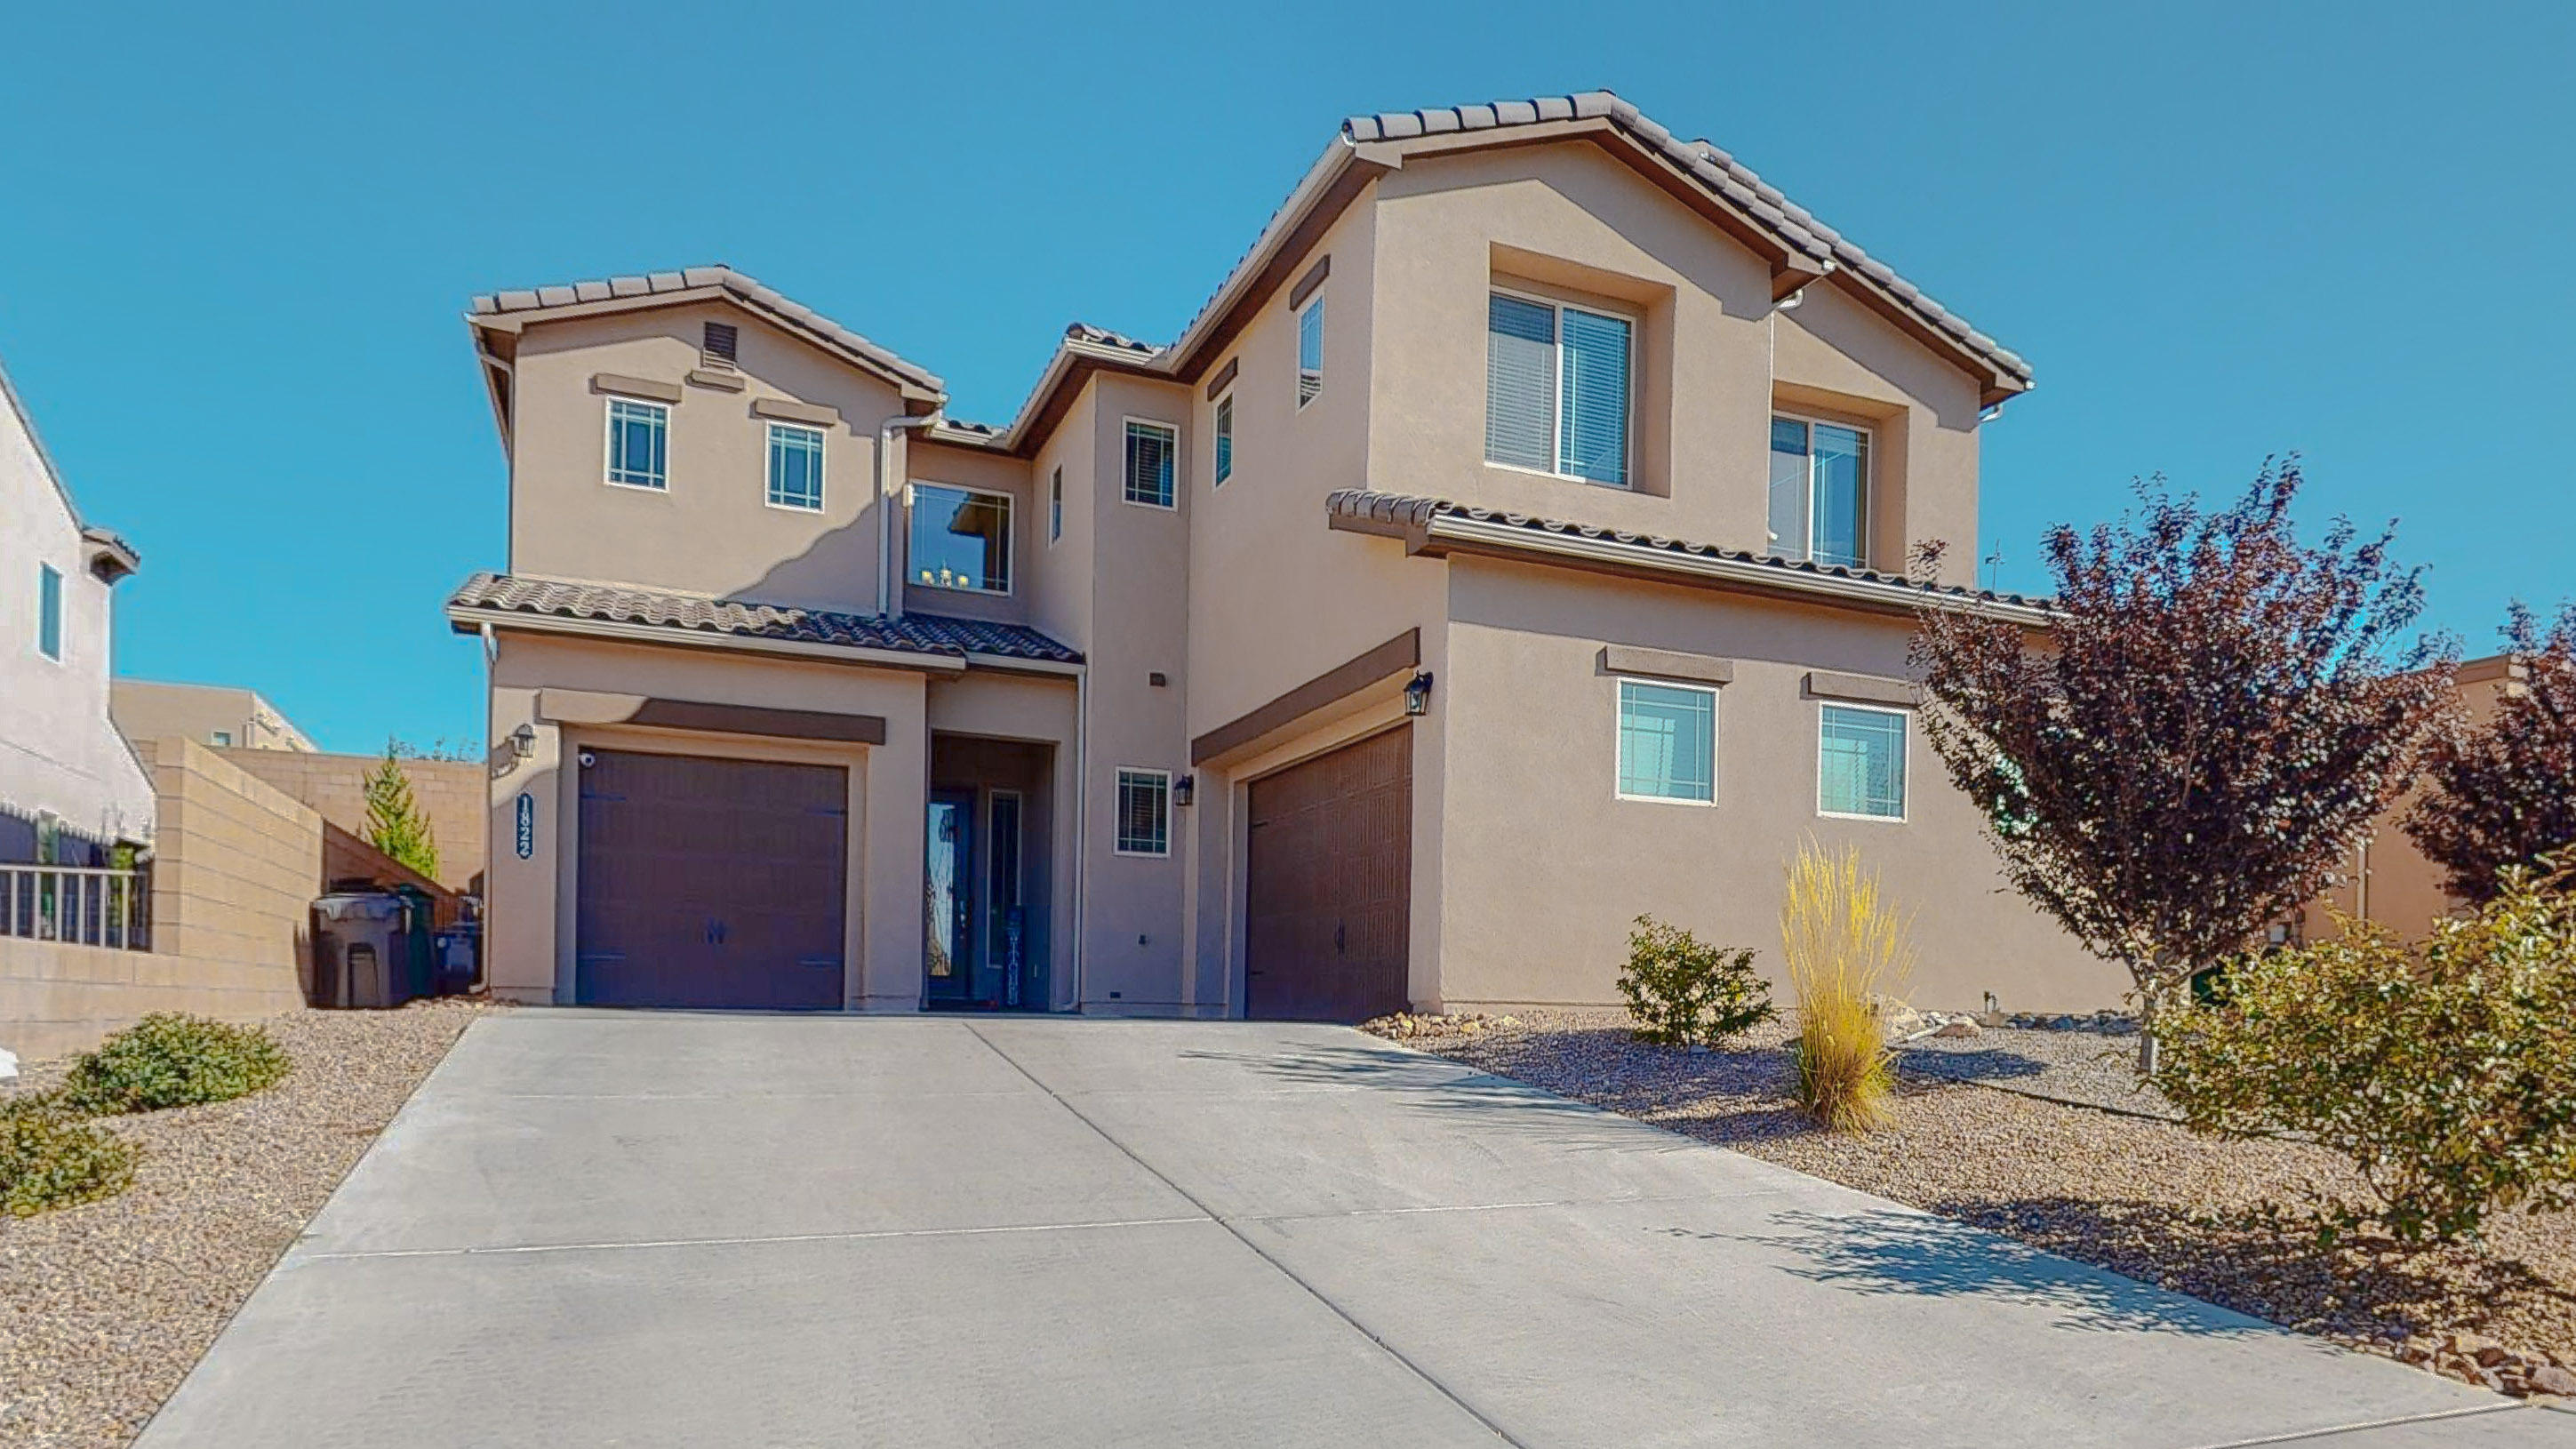 You'll be amazed at this popular DR Horton Leslie model in the beautiful Cabezon! The exterior architectural design will have you in awe as soon as you pull up! This NM Green Built Silver Certified is extremely energy efficient! Bring the in-laws as this home has 2 Masters, one on main level, and one upstairs! 2 additional bedrooms upstairs and a total of 3.5 bathrooms! Main level has an open living room, dining room and flows right into a beautiful gourmet kitchen. Main level master has full on-suite bathroom! Upstairs you walk into a Loft/game room overlooking the family room below. Over-sized laundry room upstairs. Then the Master Suite that has a beautiful bathroom with separate garden tub and massive his and hers closets! Refrigerator, Washer and Dryer and HOT TUB all convey.